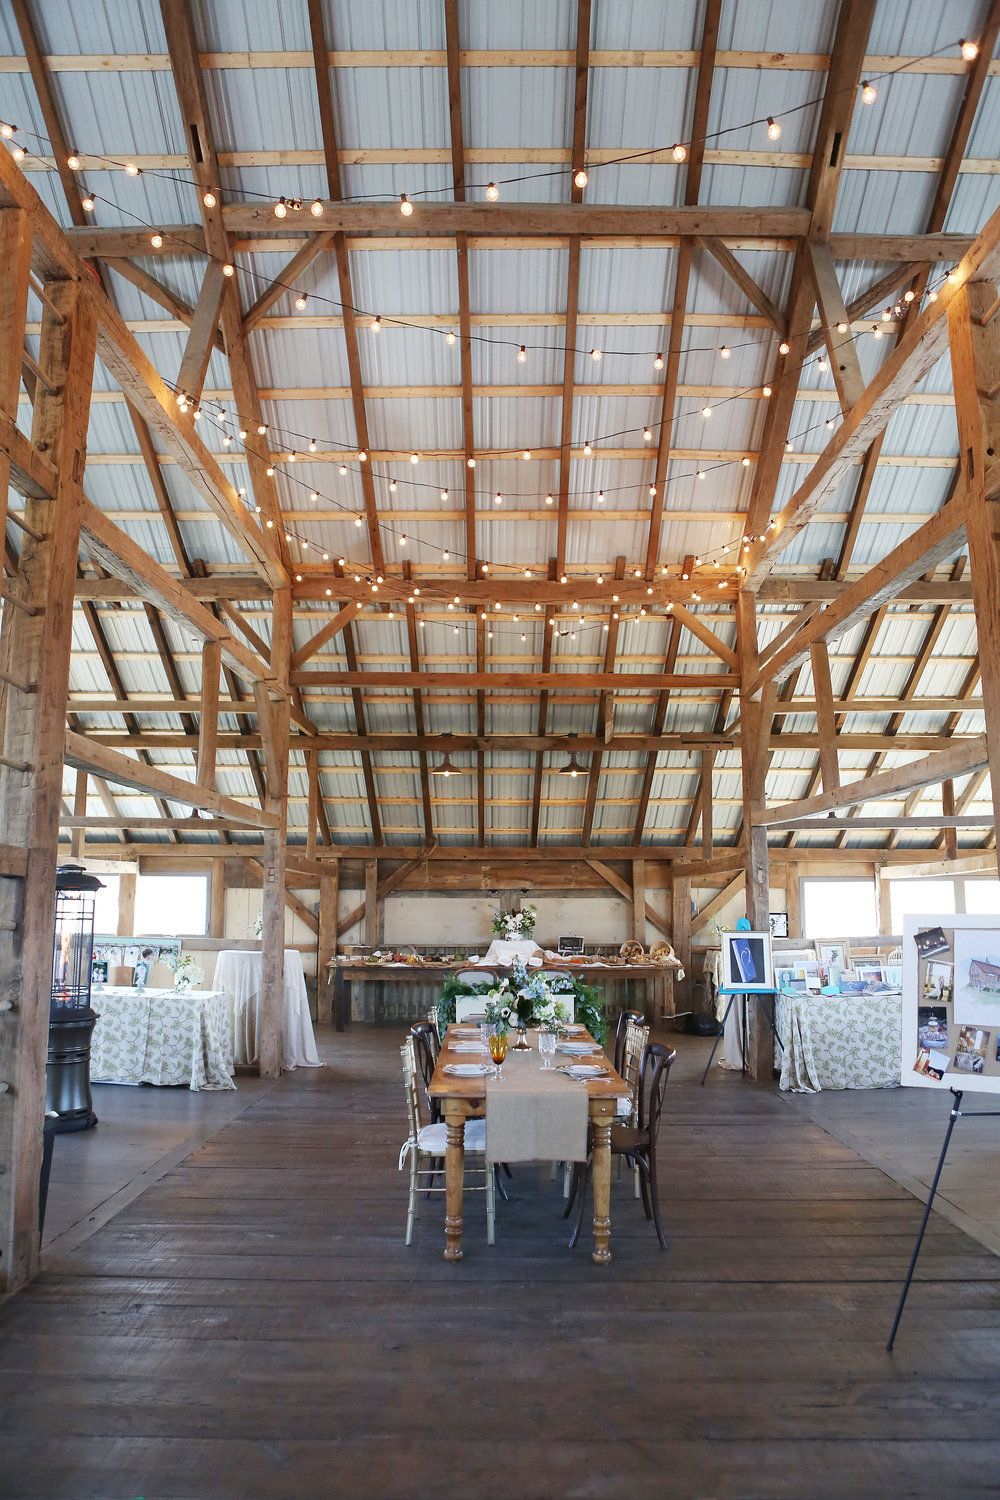 The Farm Bakery Events Wedding Location In Quakertown Pa Wedding Planning Timeline Farm Wedding Locations